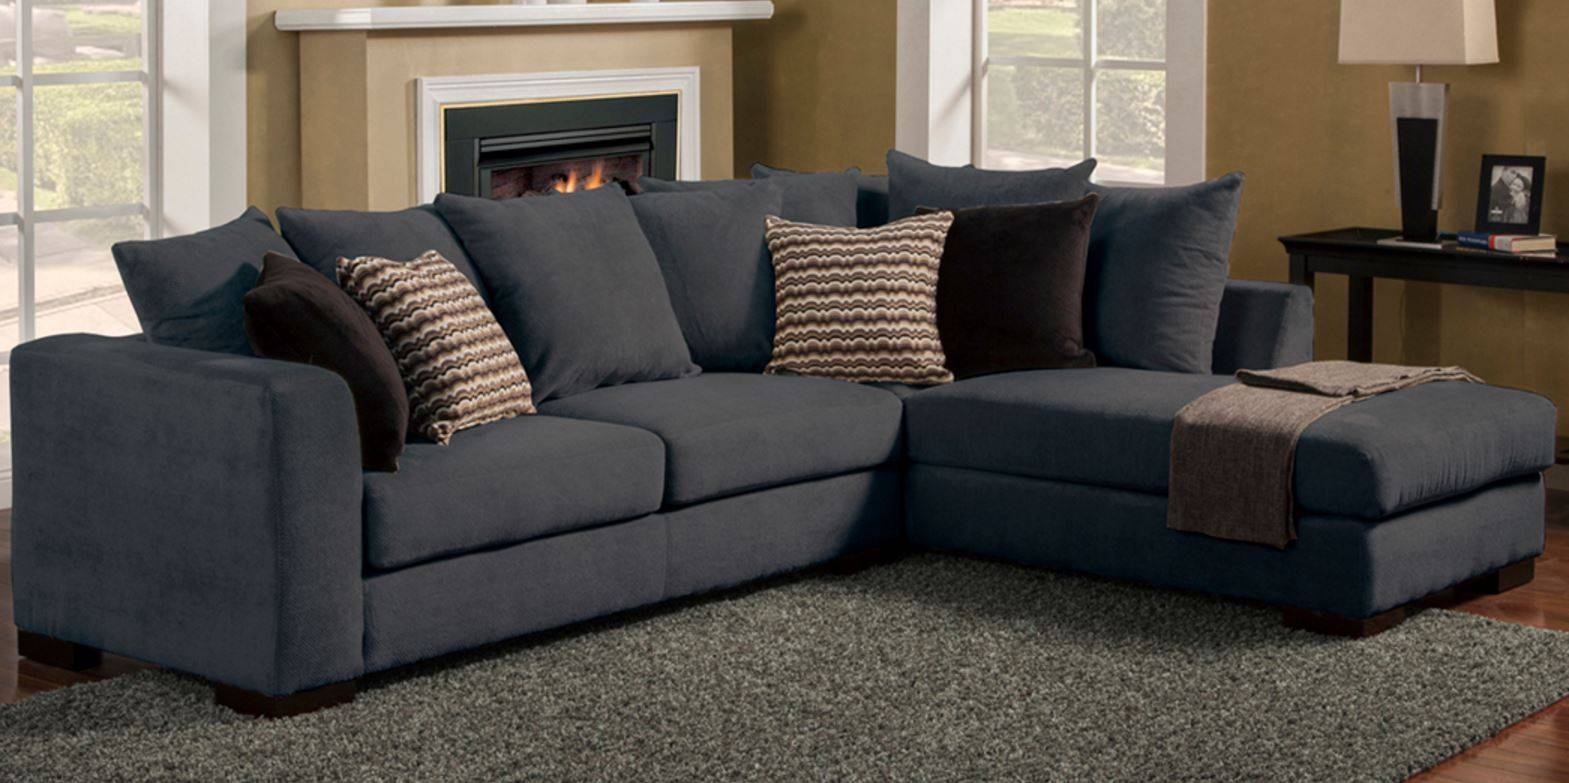 grey upholstered deep sectional sofa with wicket rattan intended for deep cushioned sofas : deep sectional couch - Sectionals, Sofas & Couches